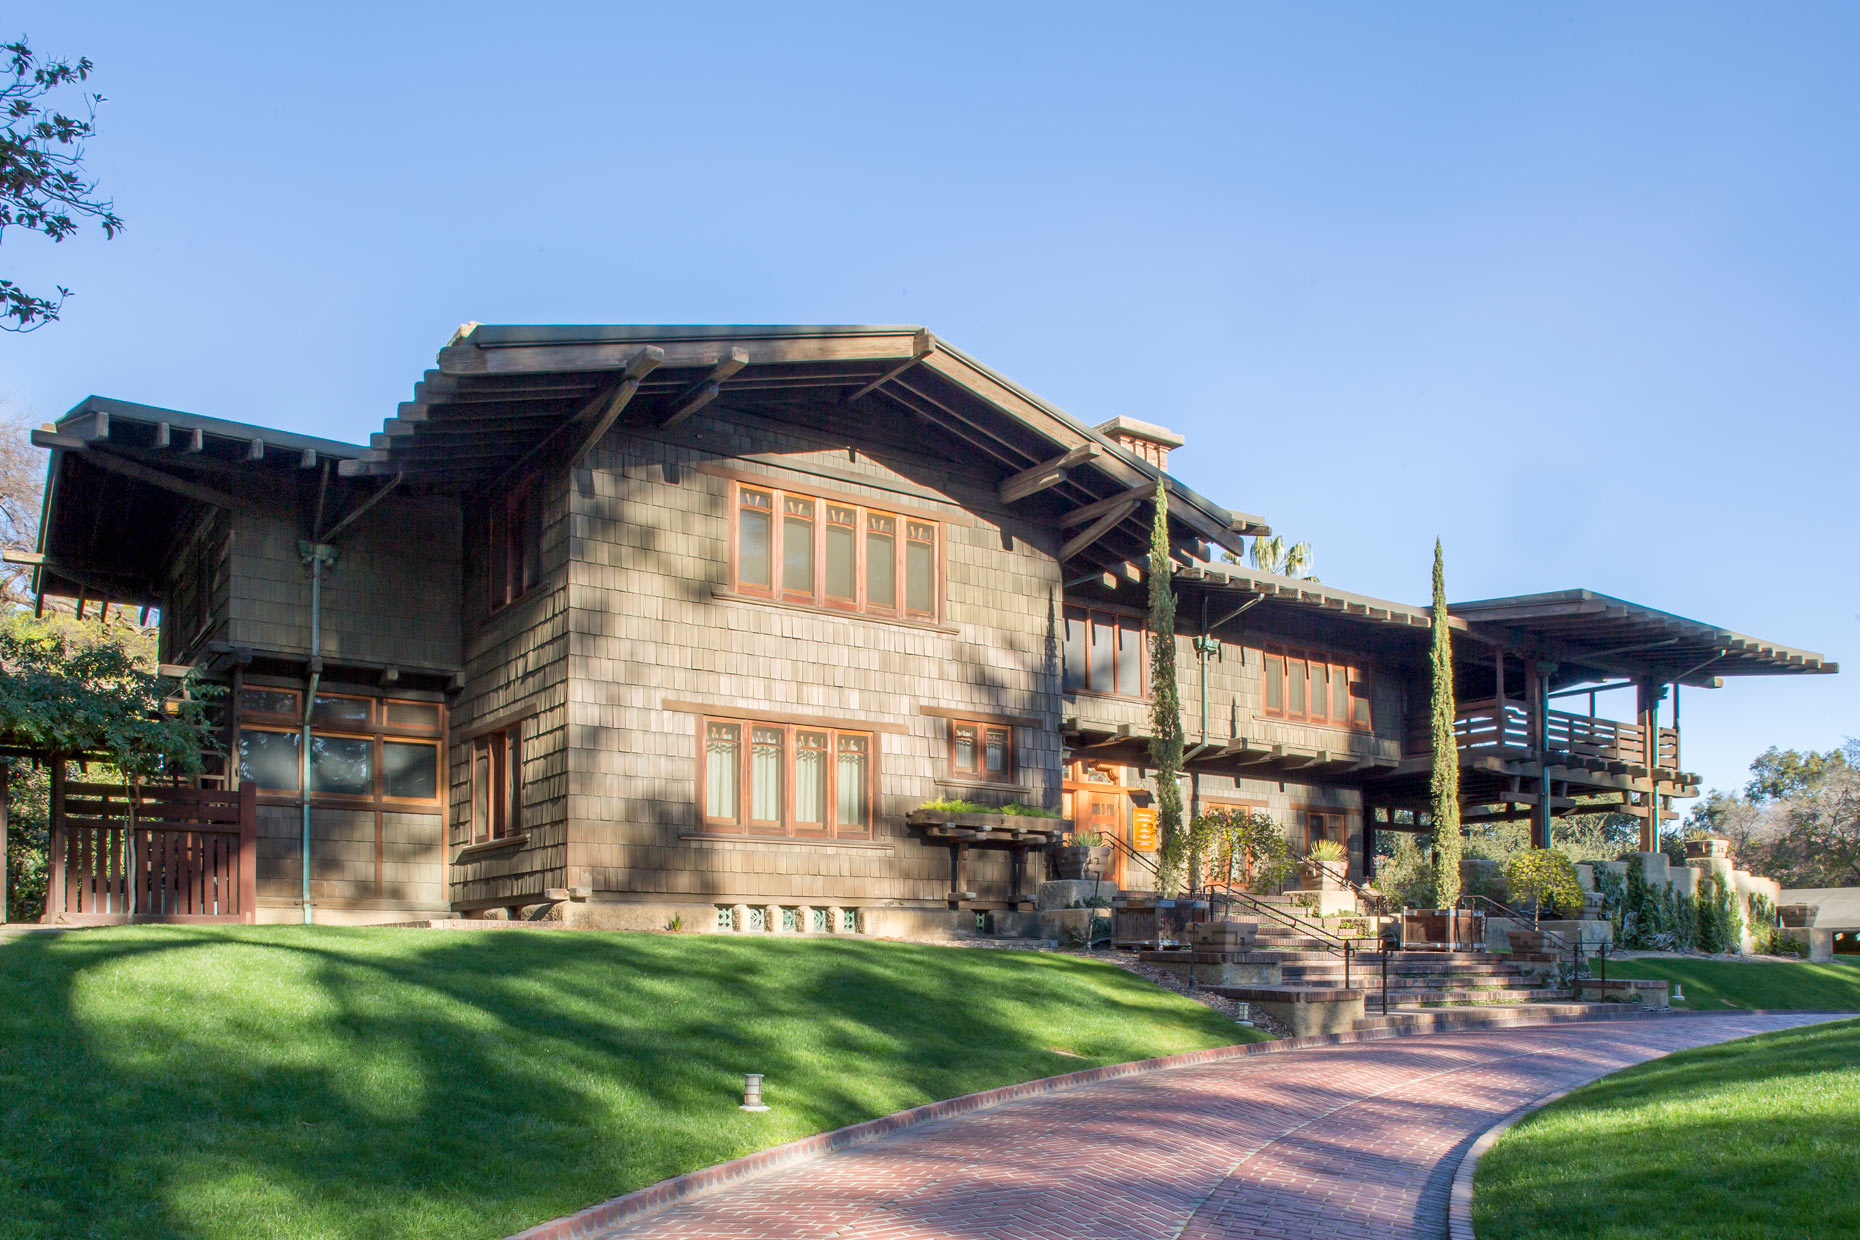 033-Gamble-House